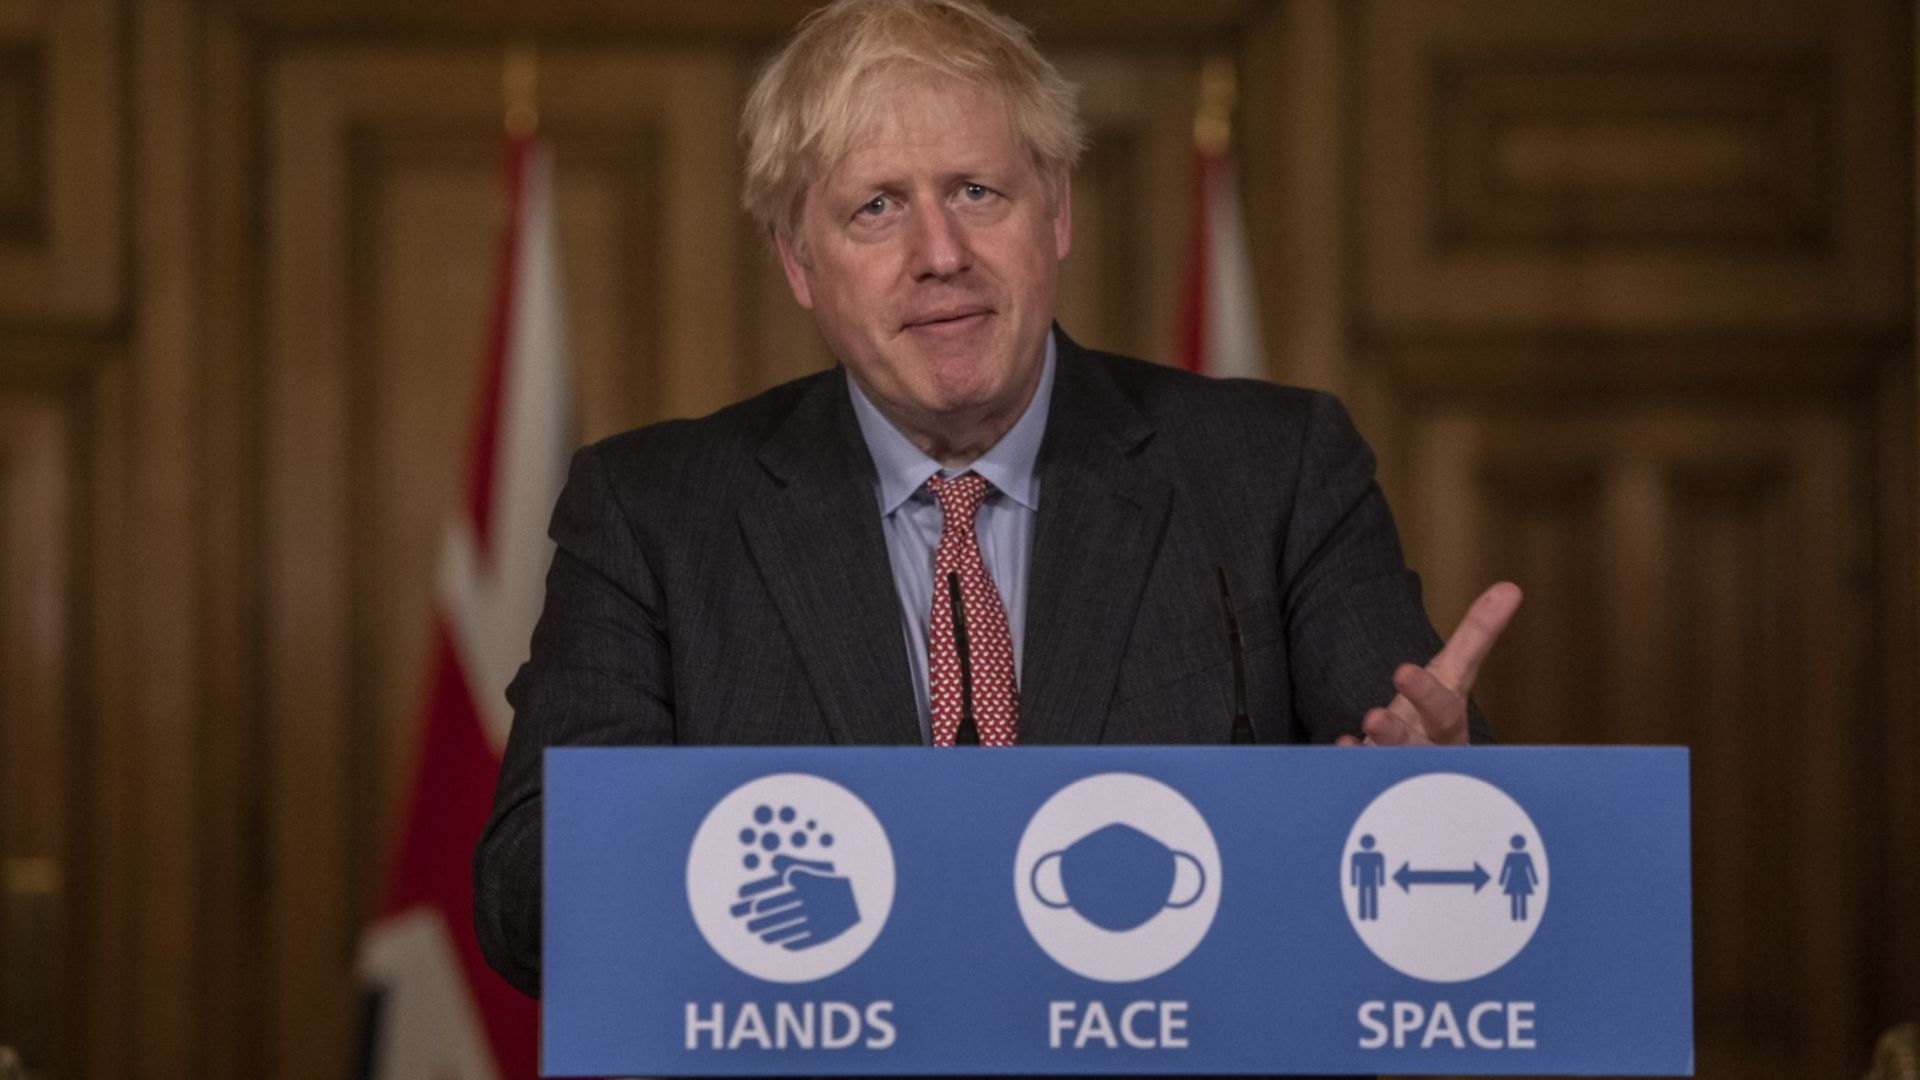 Boris Johnson stands behind the podium at 10 Downing Street - Credit: PA Wire